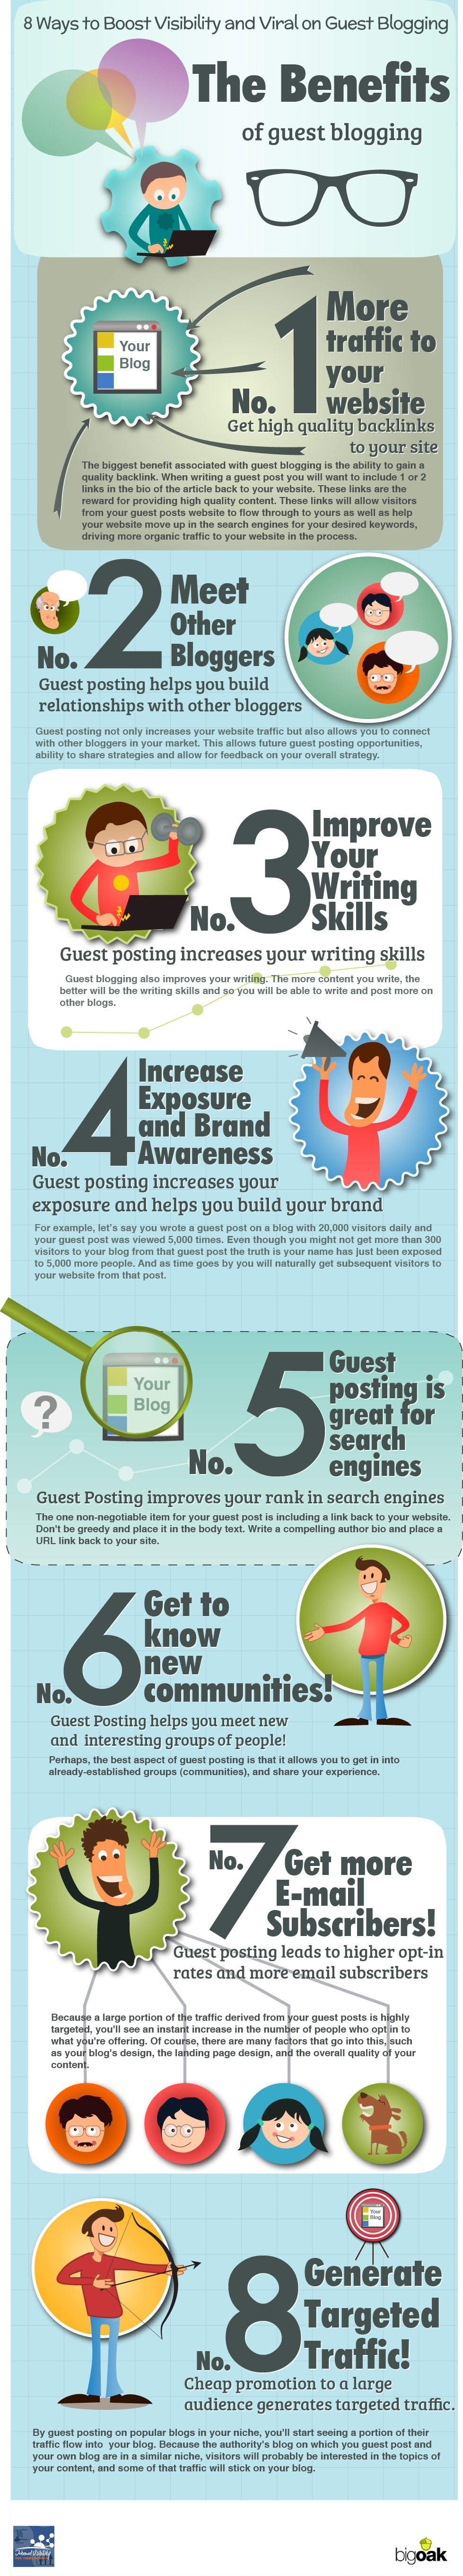 infographic - Benefits of Guest Blogging: 8 Ways to Boost Brand/website Awareness and Discover New Trends: Key Tips to Indexing Your Blog Quickly and Easily